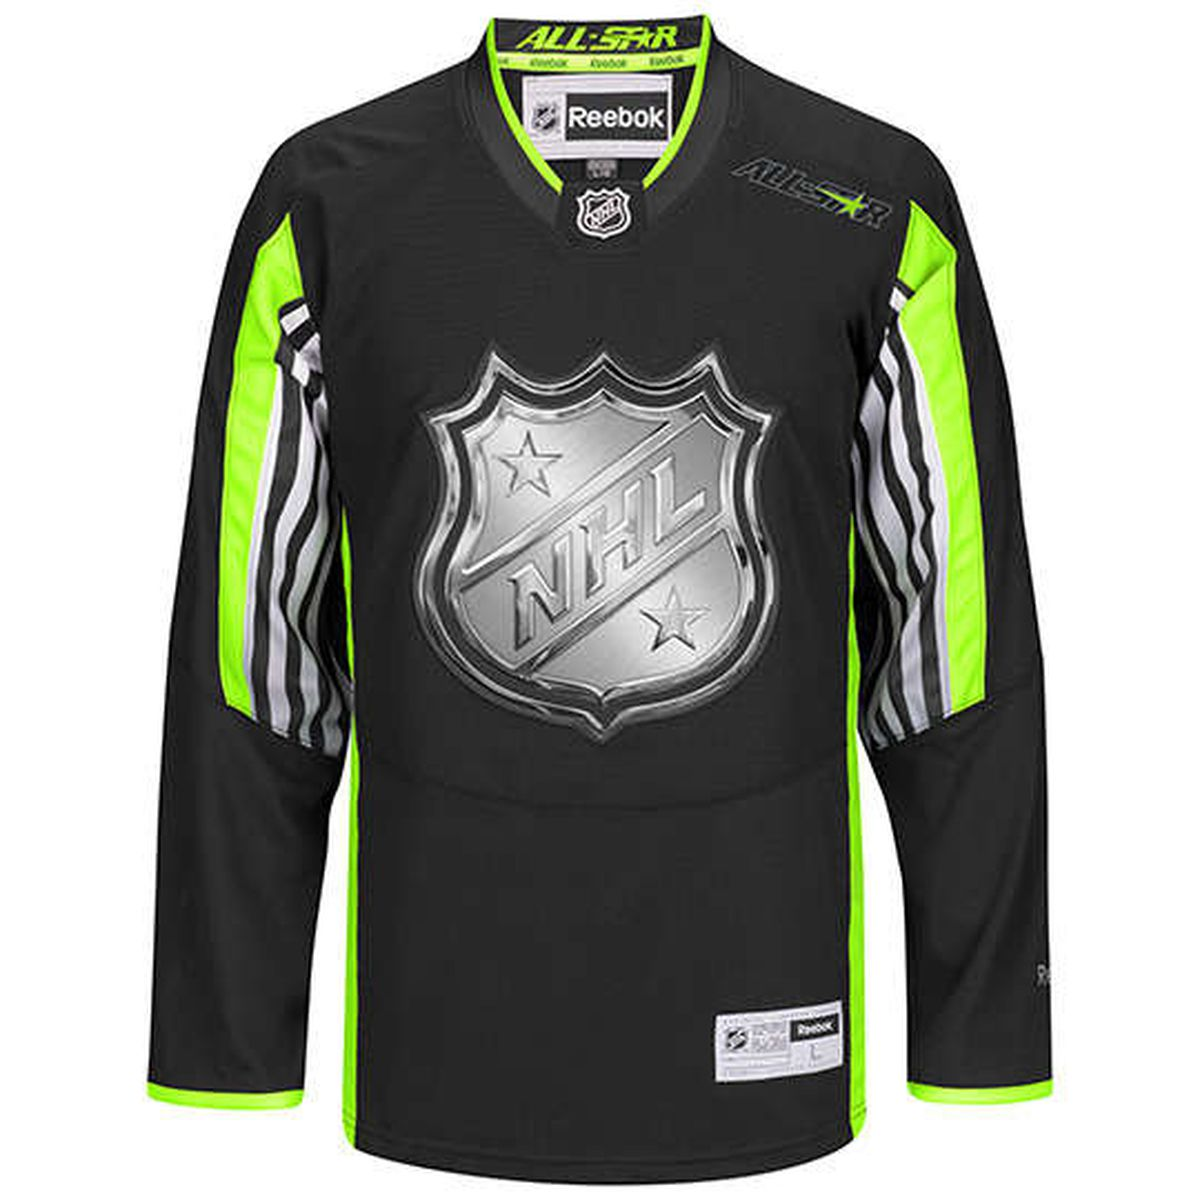 see steven stamkos 2018 nhl all star jersey  and heres the away jersey that  team toews will wear. e0d9ed357